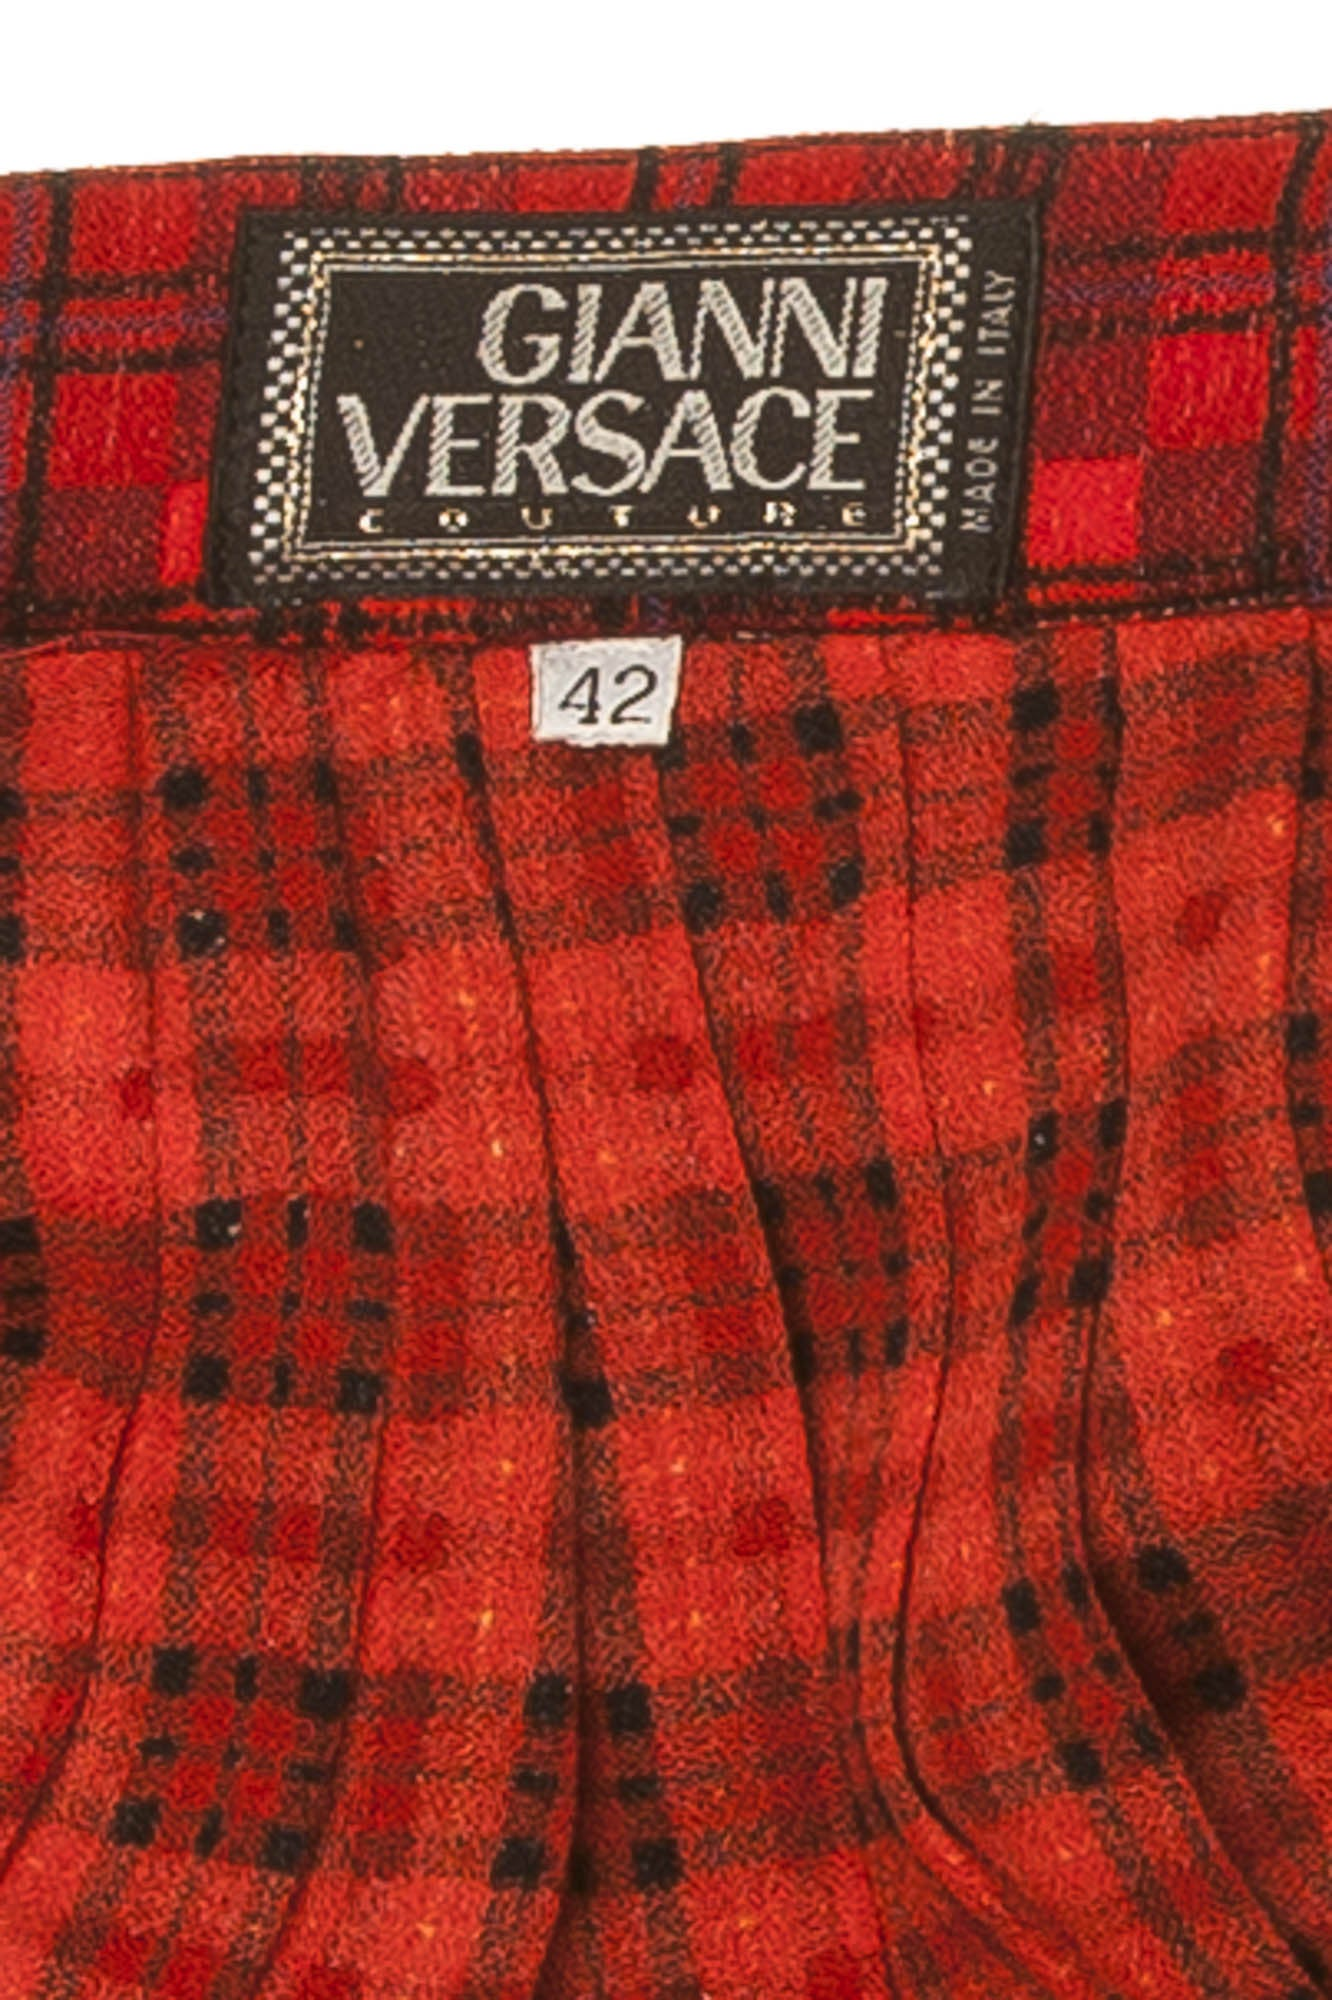 c023b3af4d Gianni Versace Couture - Tartan Pleated Wool Blend Green and Red Plaid Skirt  - IT 42